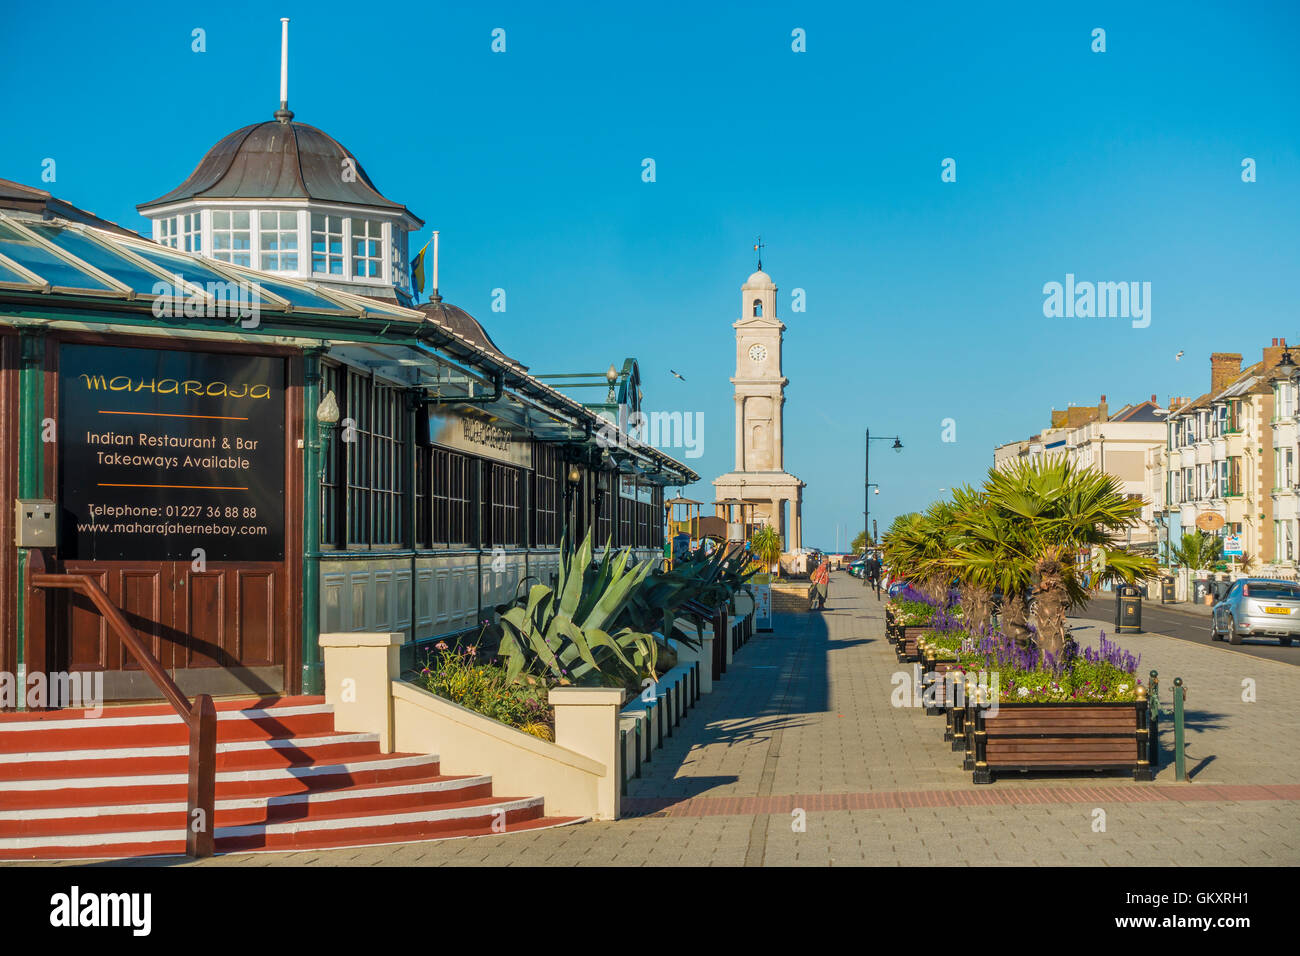 Bandstand and Clock Tower Herne Bay Seafront Kent England UK - Stock Image